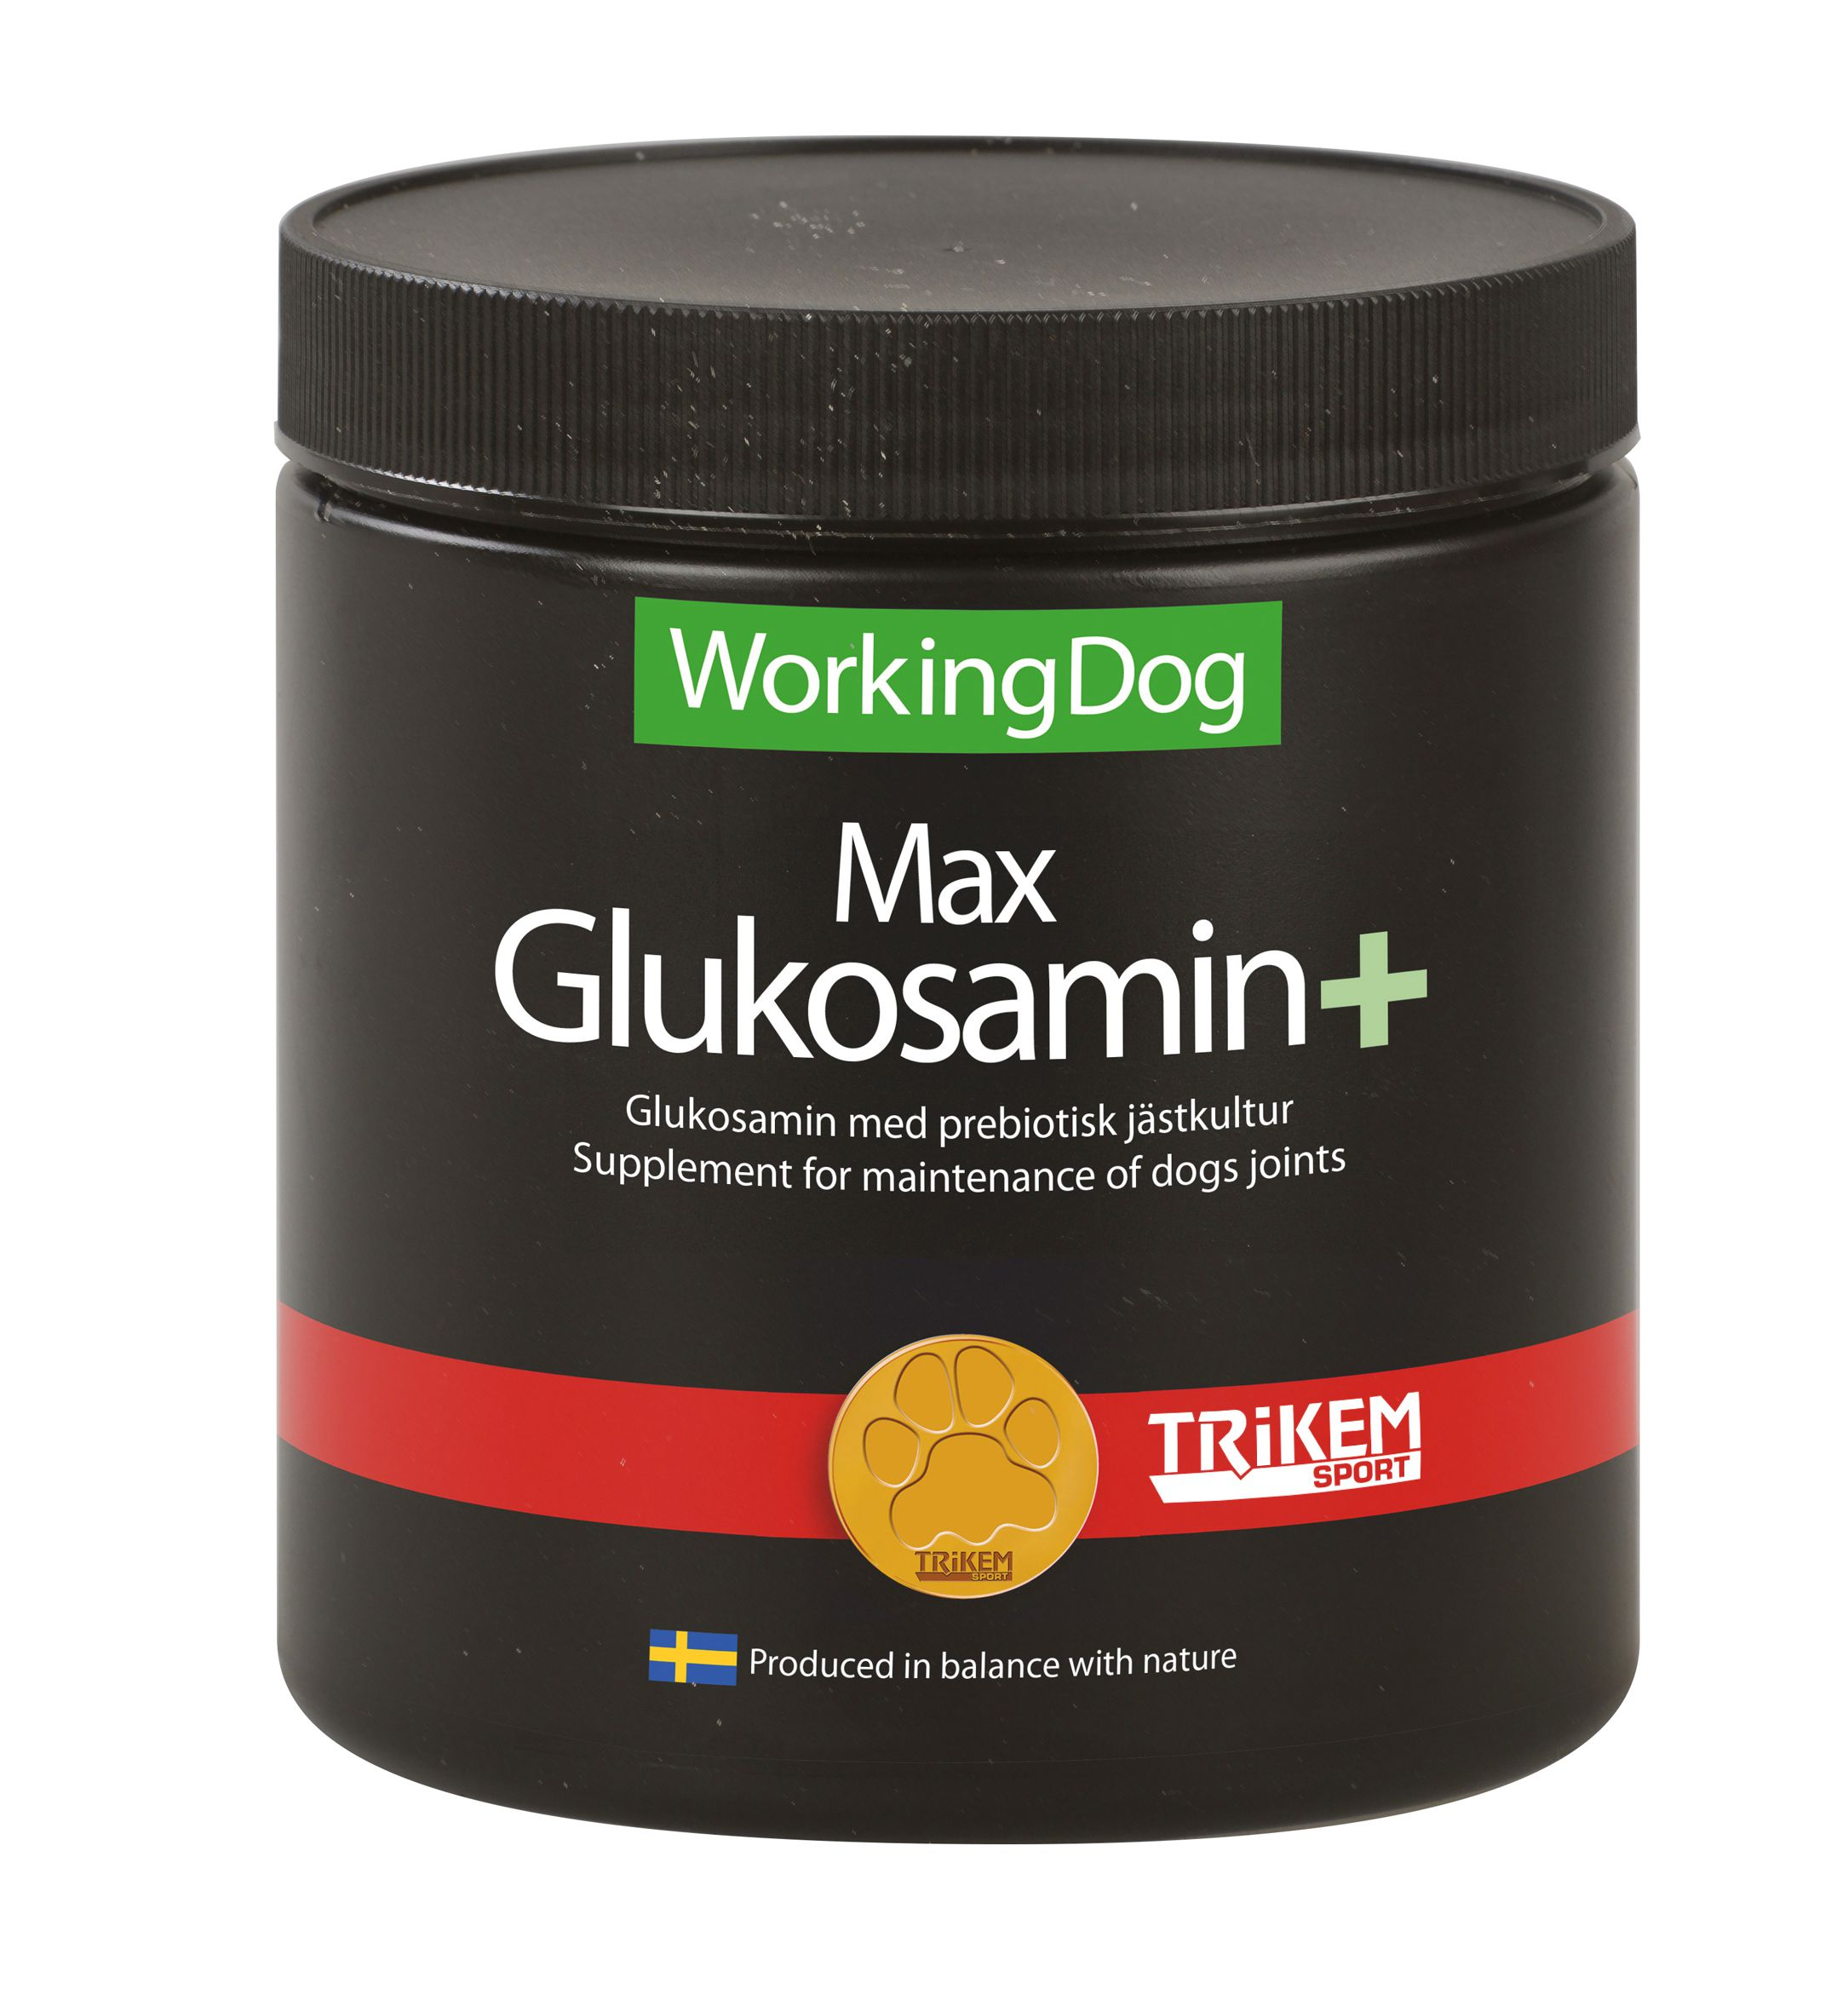 Image of the illigal product: Max Glukosamin+